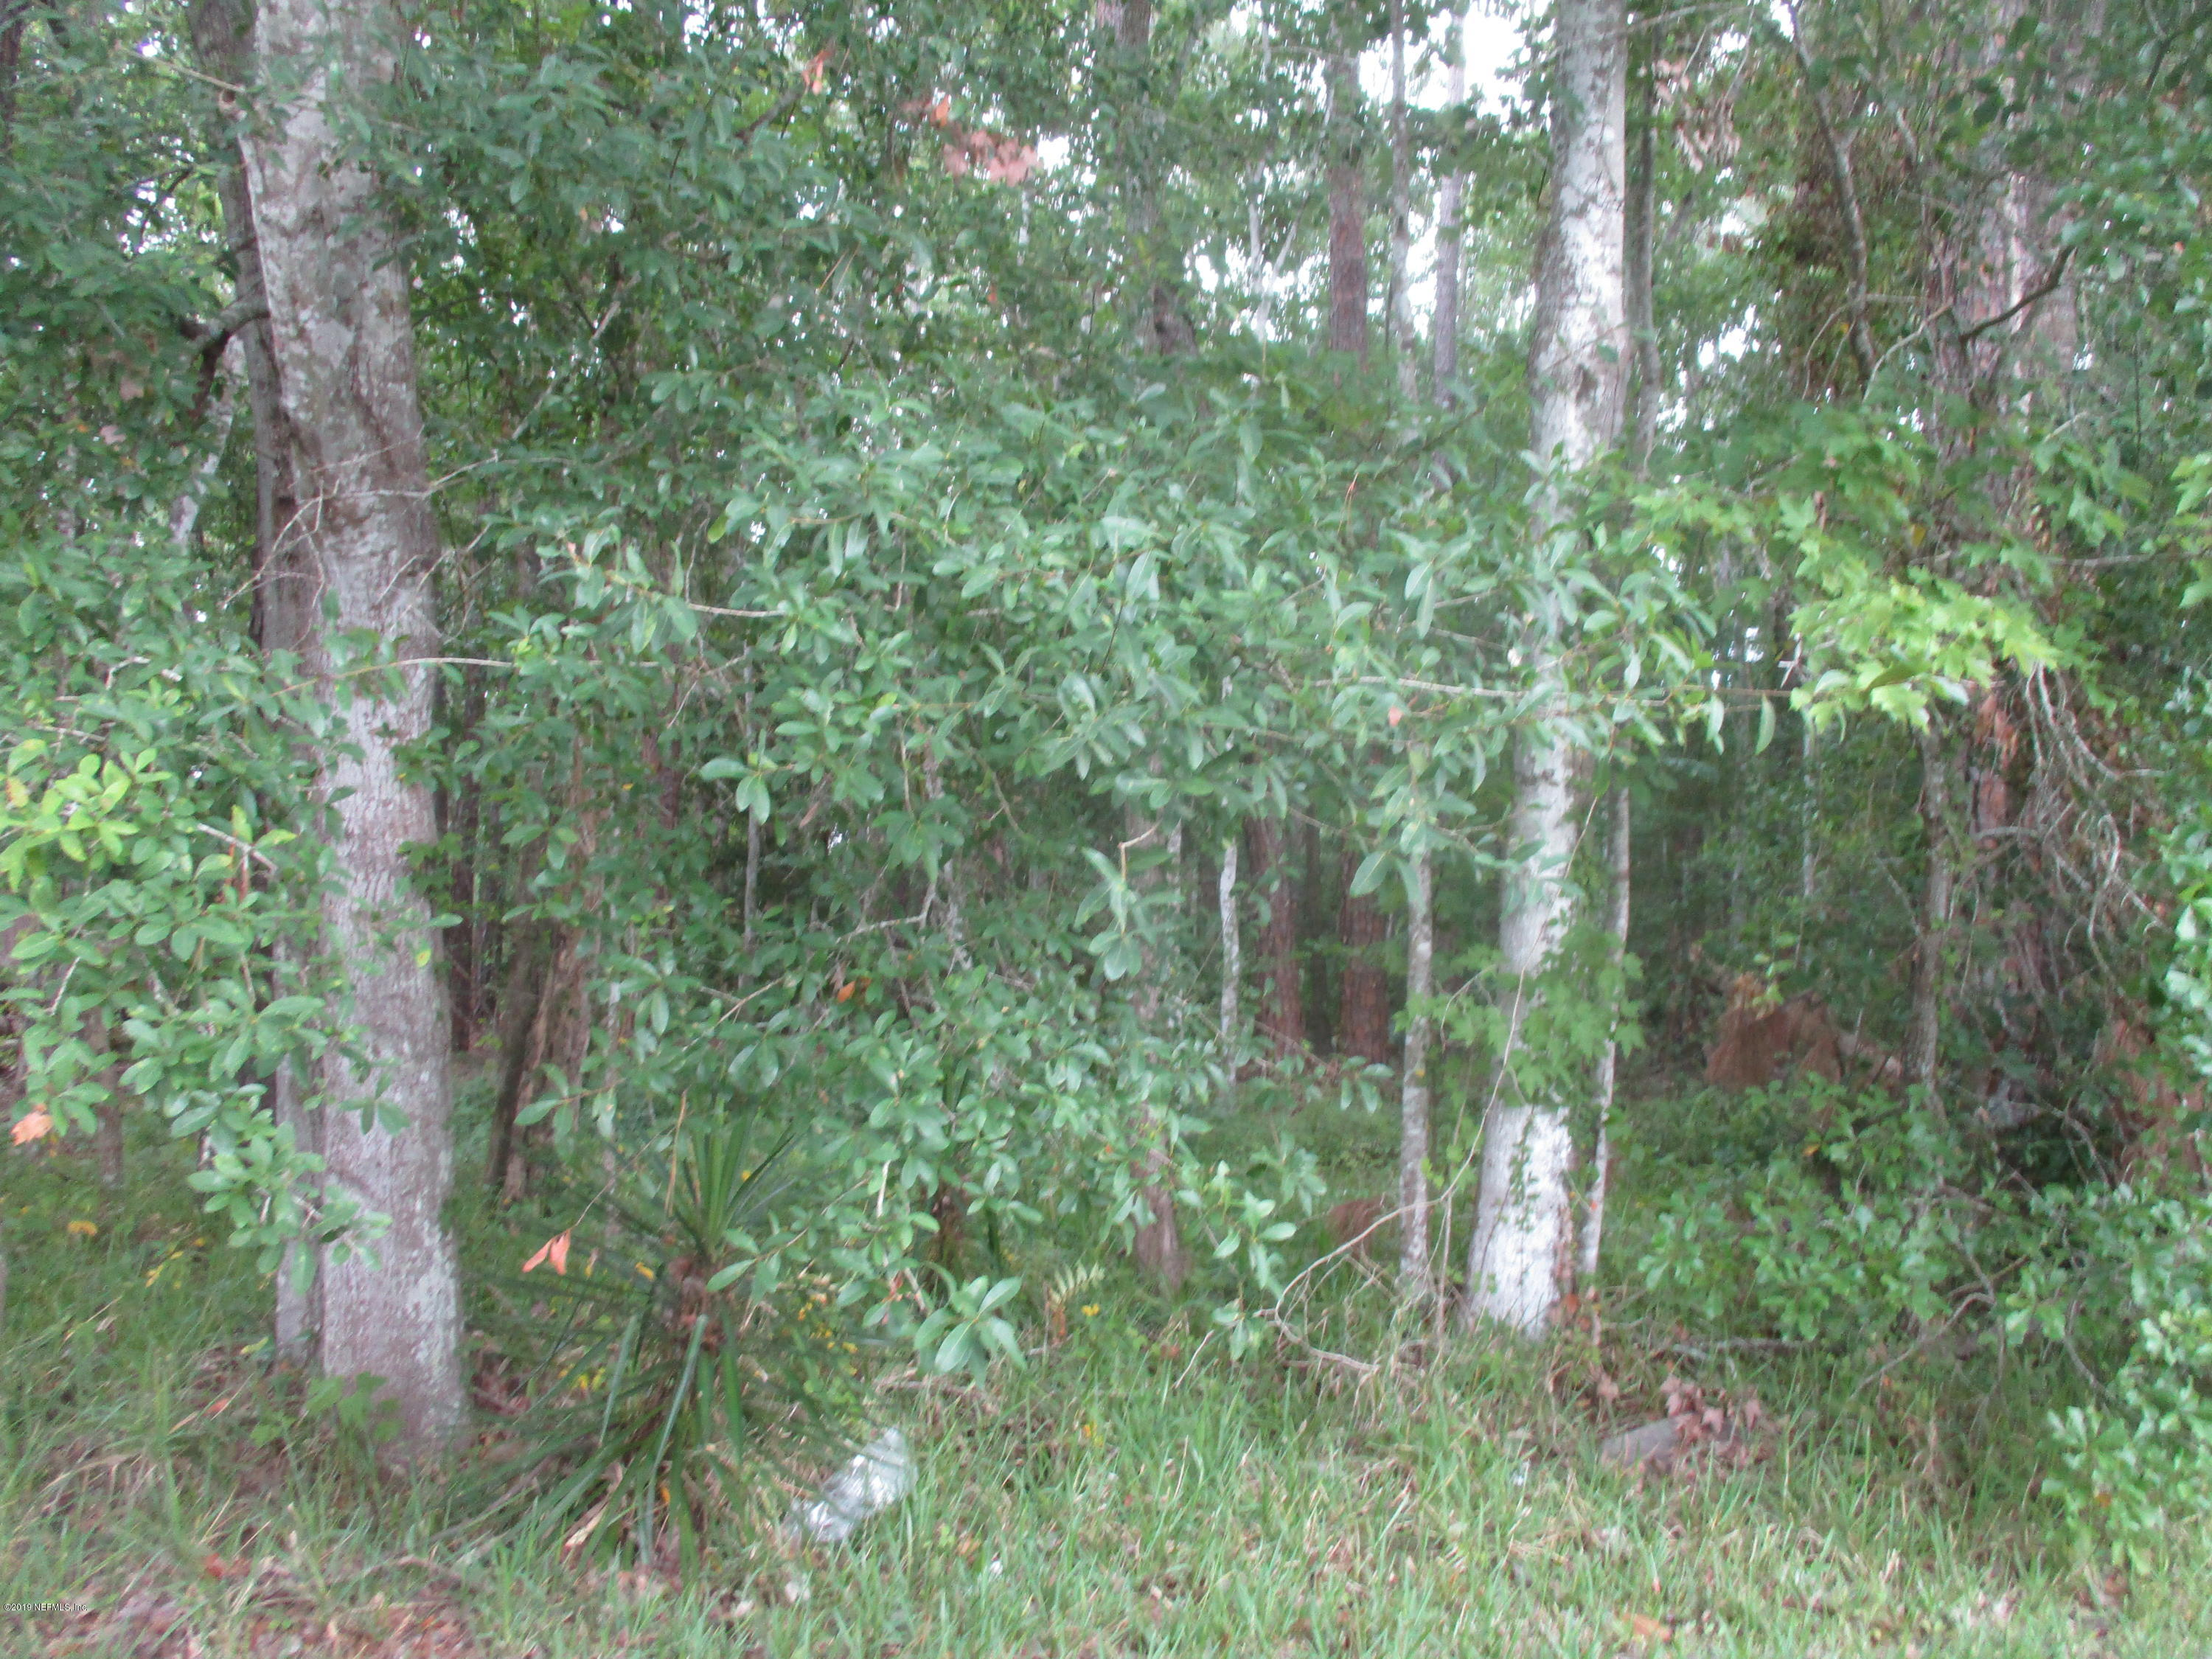 1010 MILL CREEK, JACKSONVILLE, FLORIDA 32211, ,Vacant land,For sale,MILL CREEK,1000569